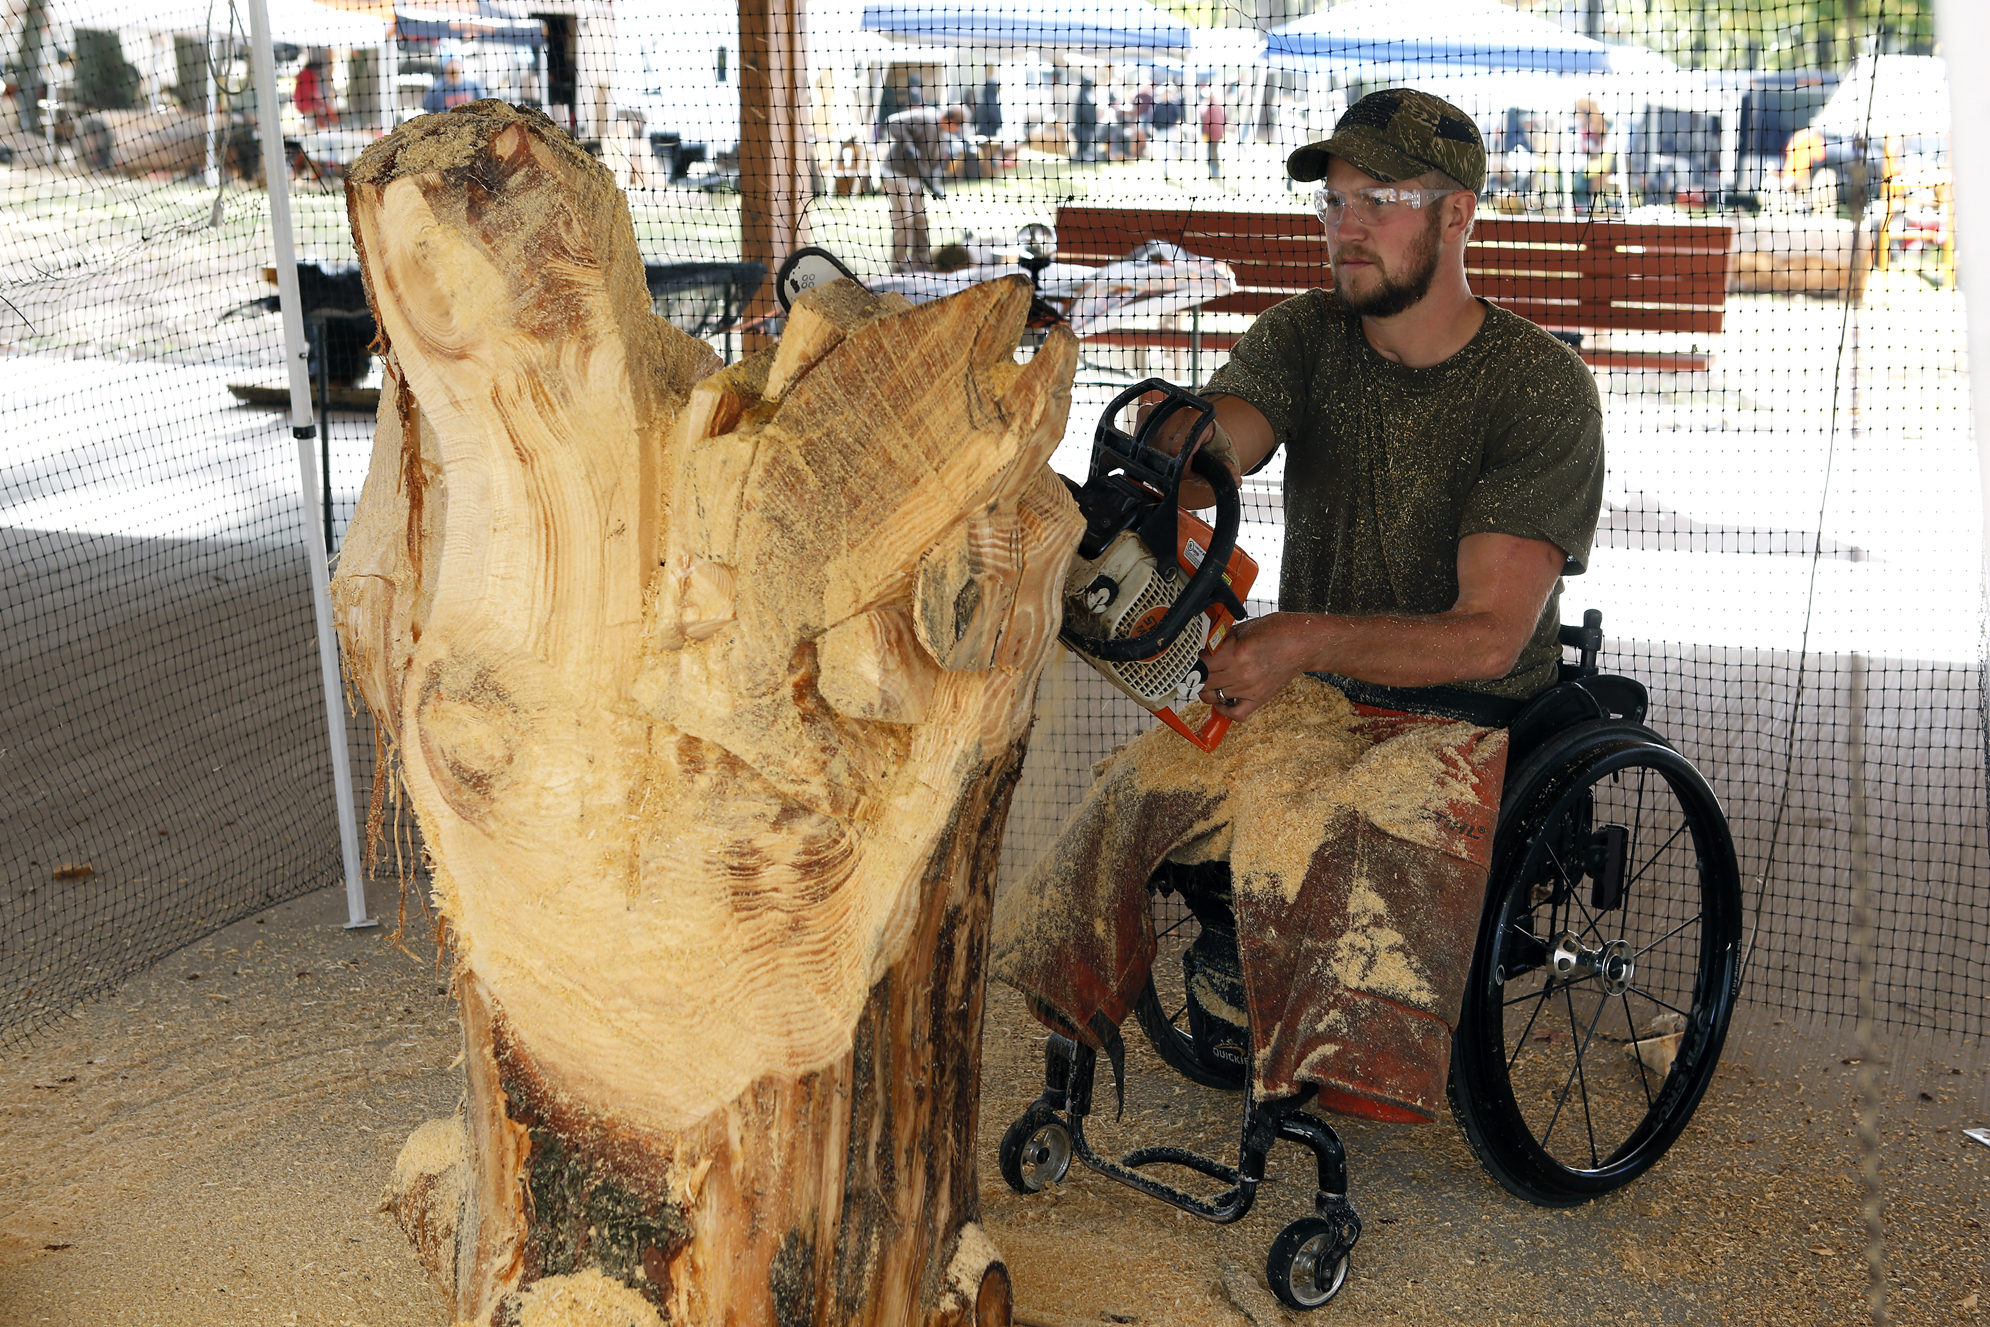 Chainsaw carving on display news sports jobs the express